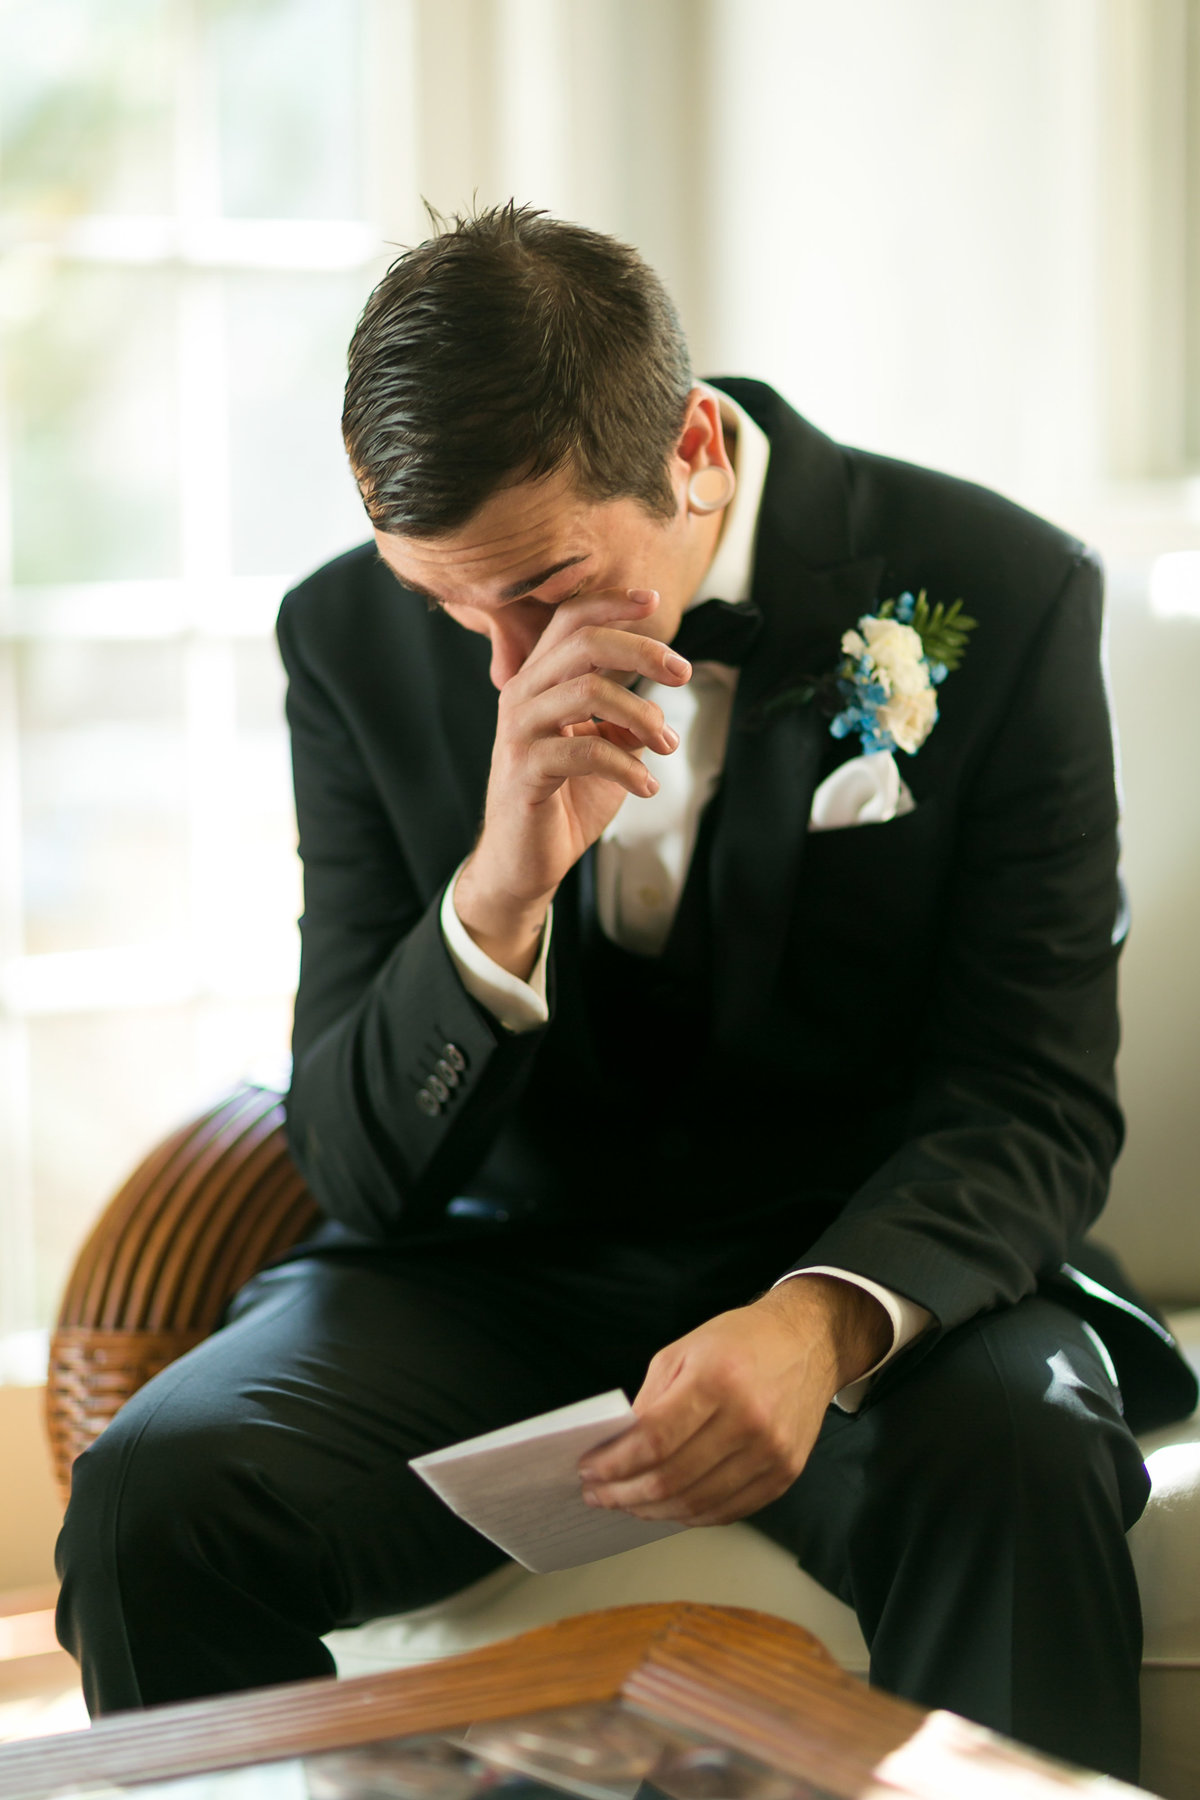 wedding-groom-reading-letter-2